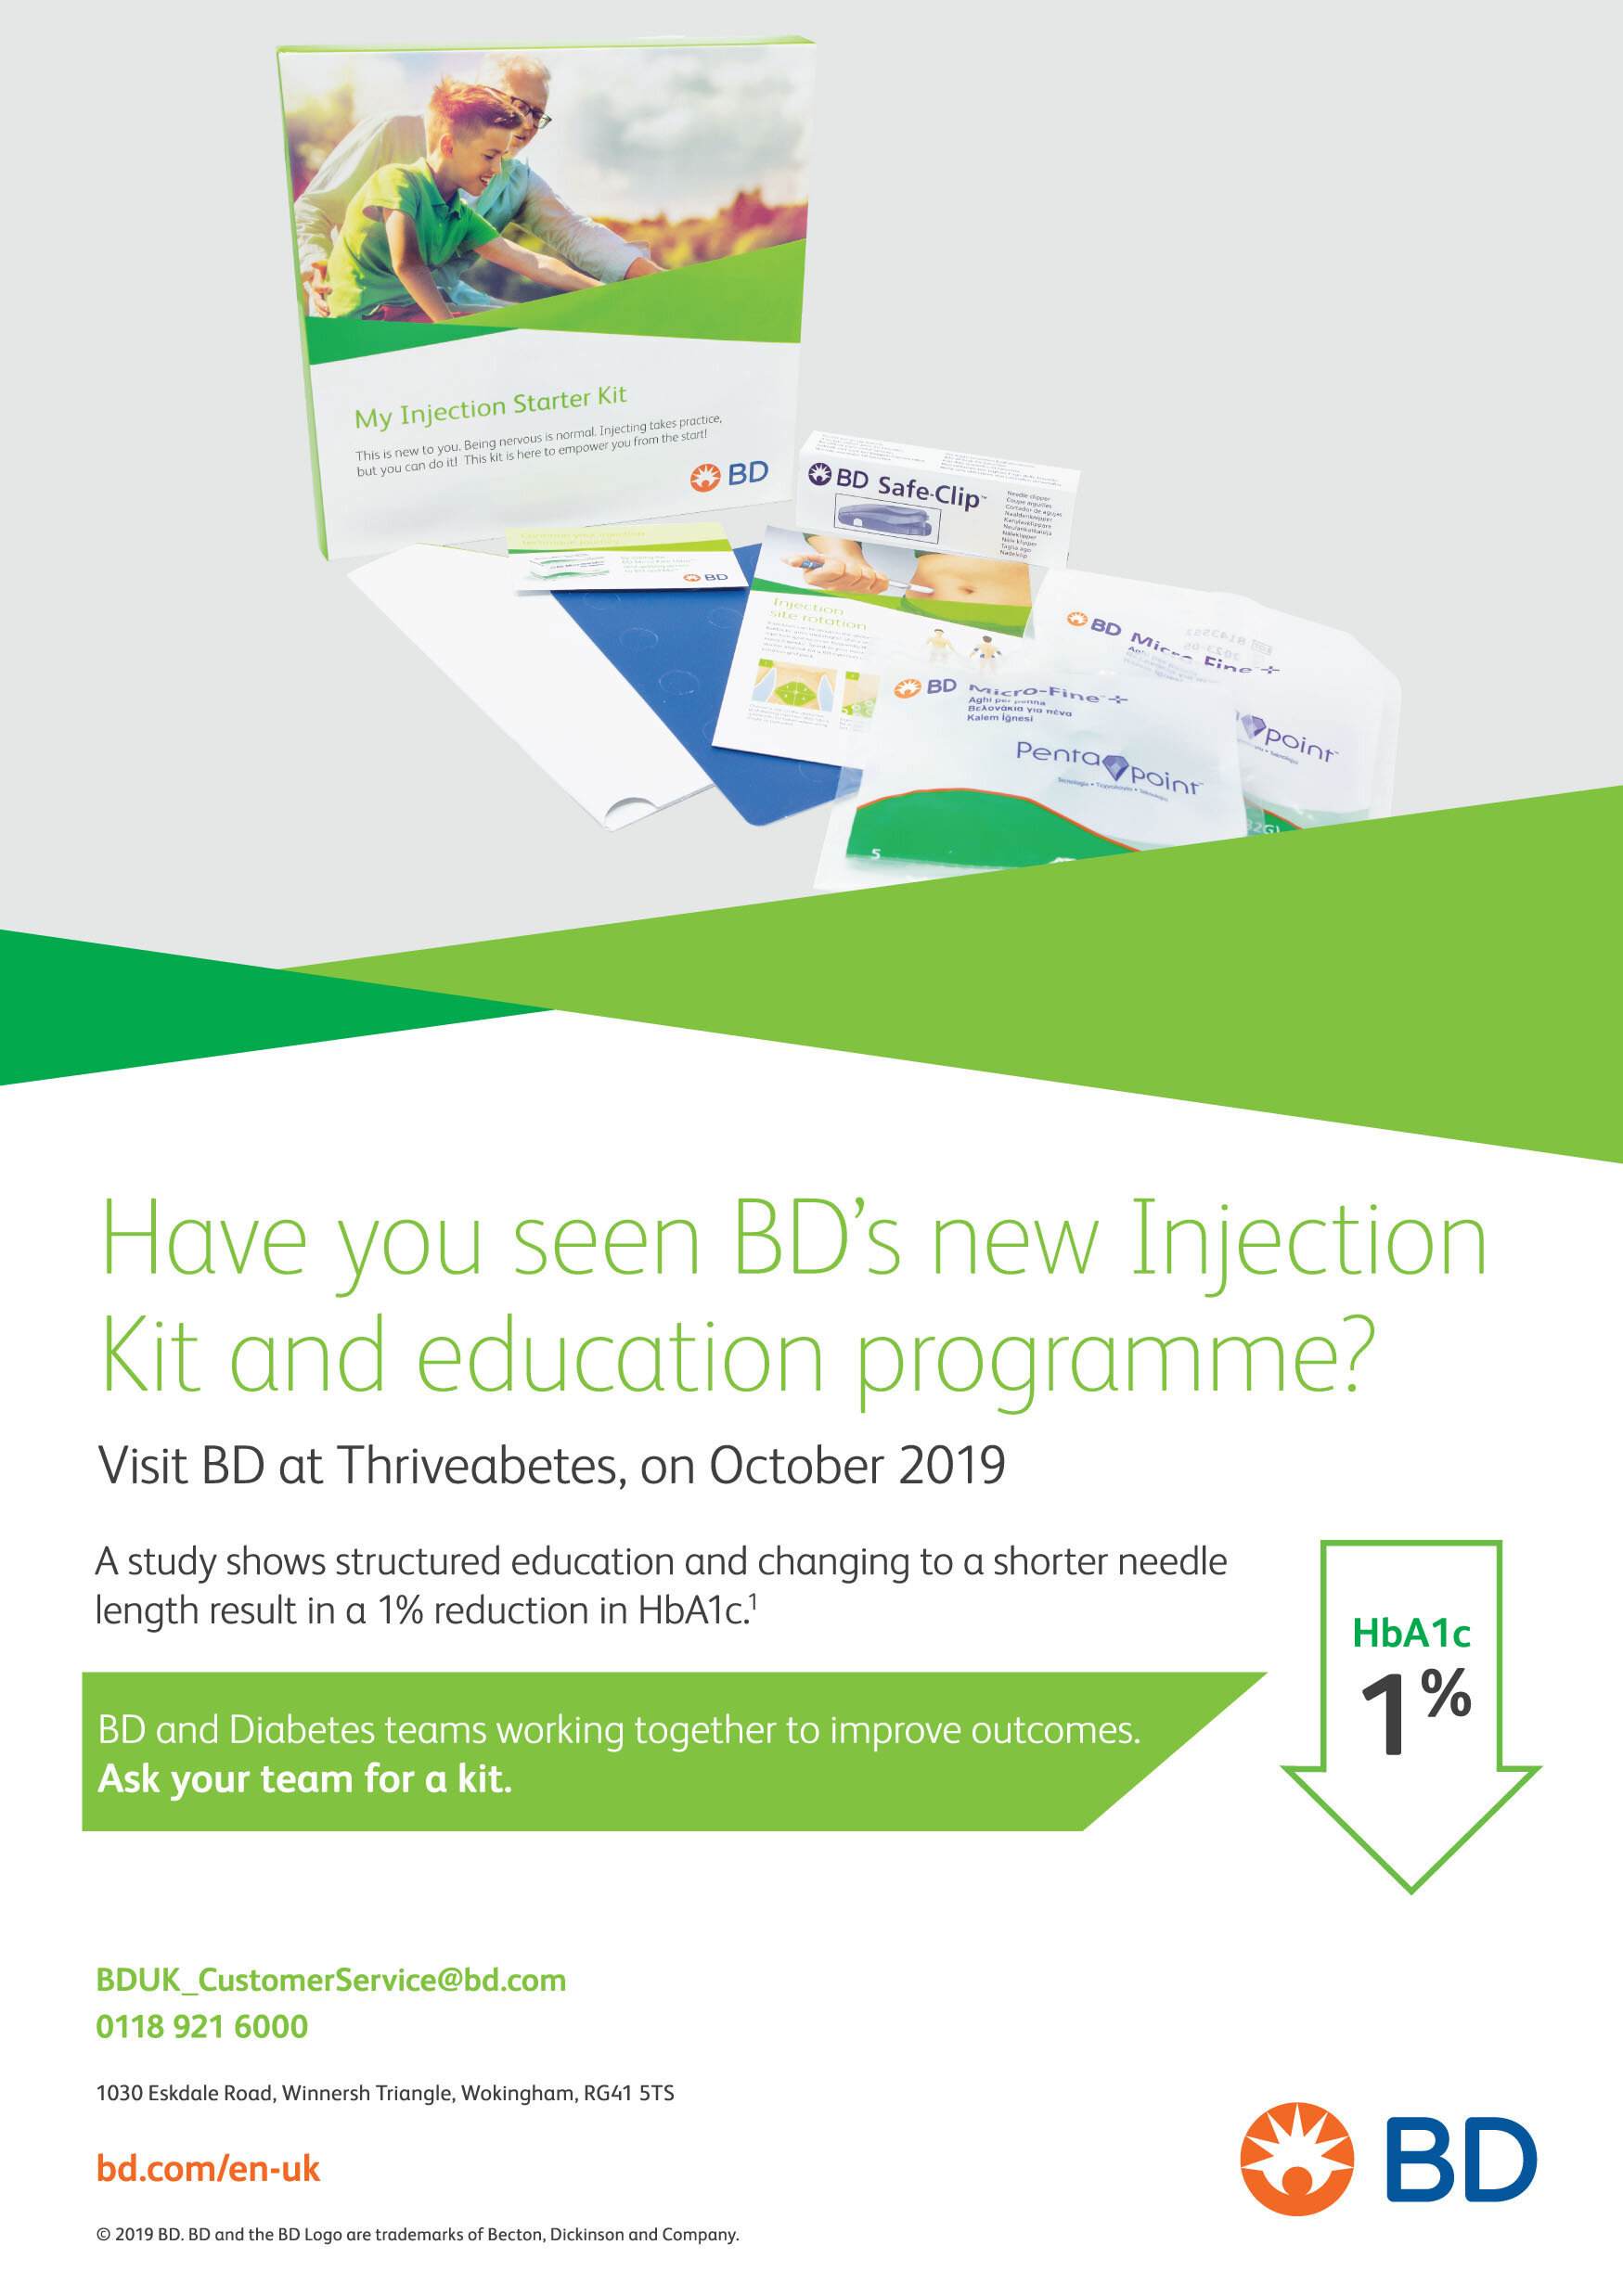 A5 Injection Kit and education programme.jpg